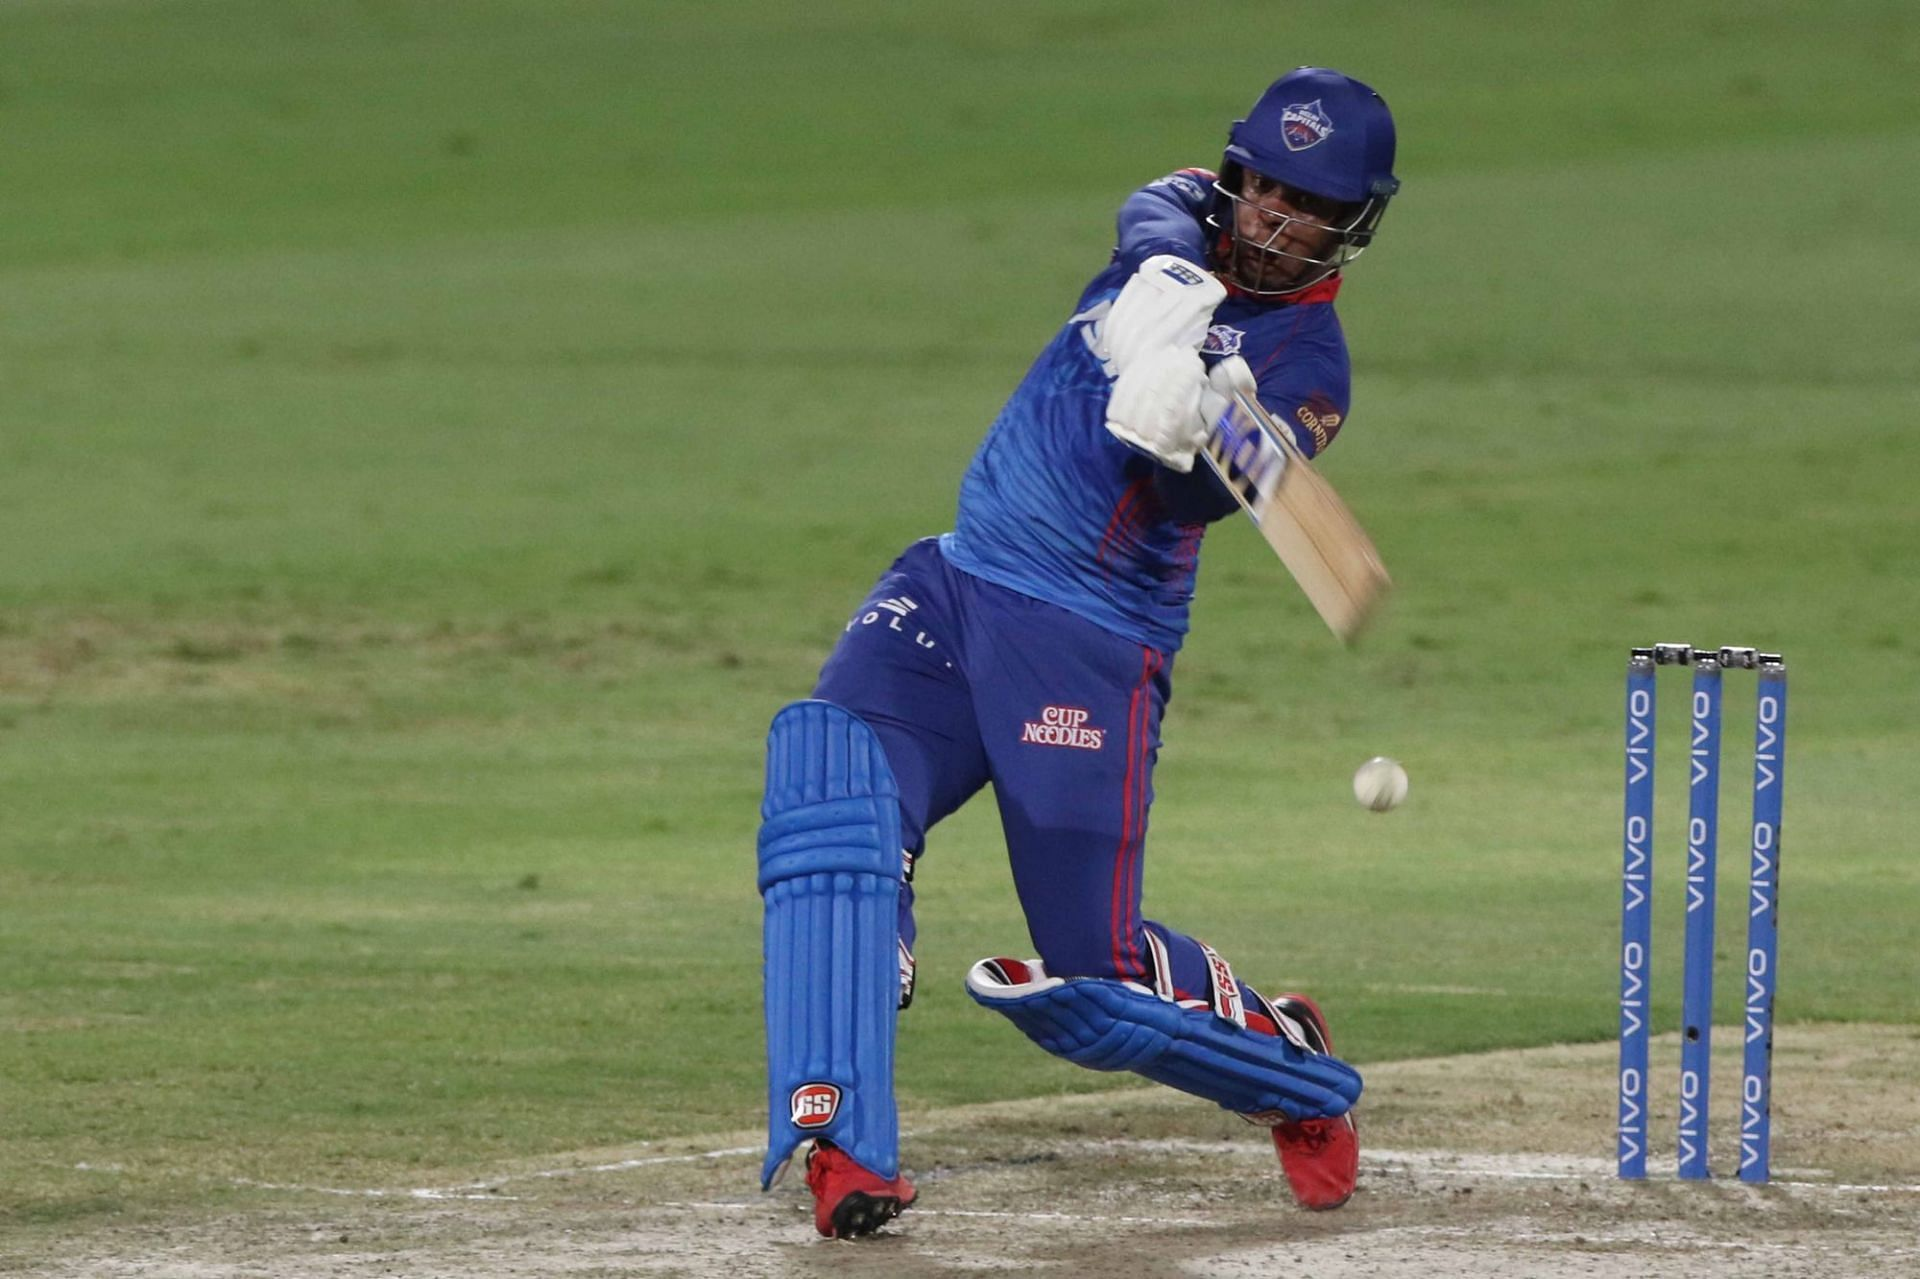 Shimron Hetmyer came in to bat too late against KKR (Pic Credits: IPLT20.com)